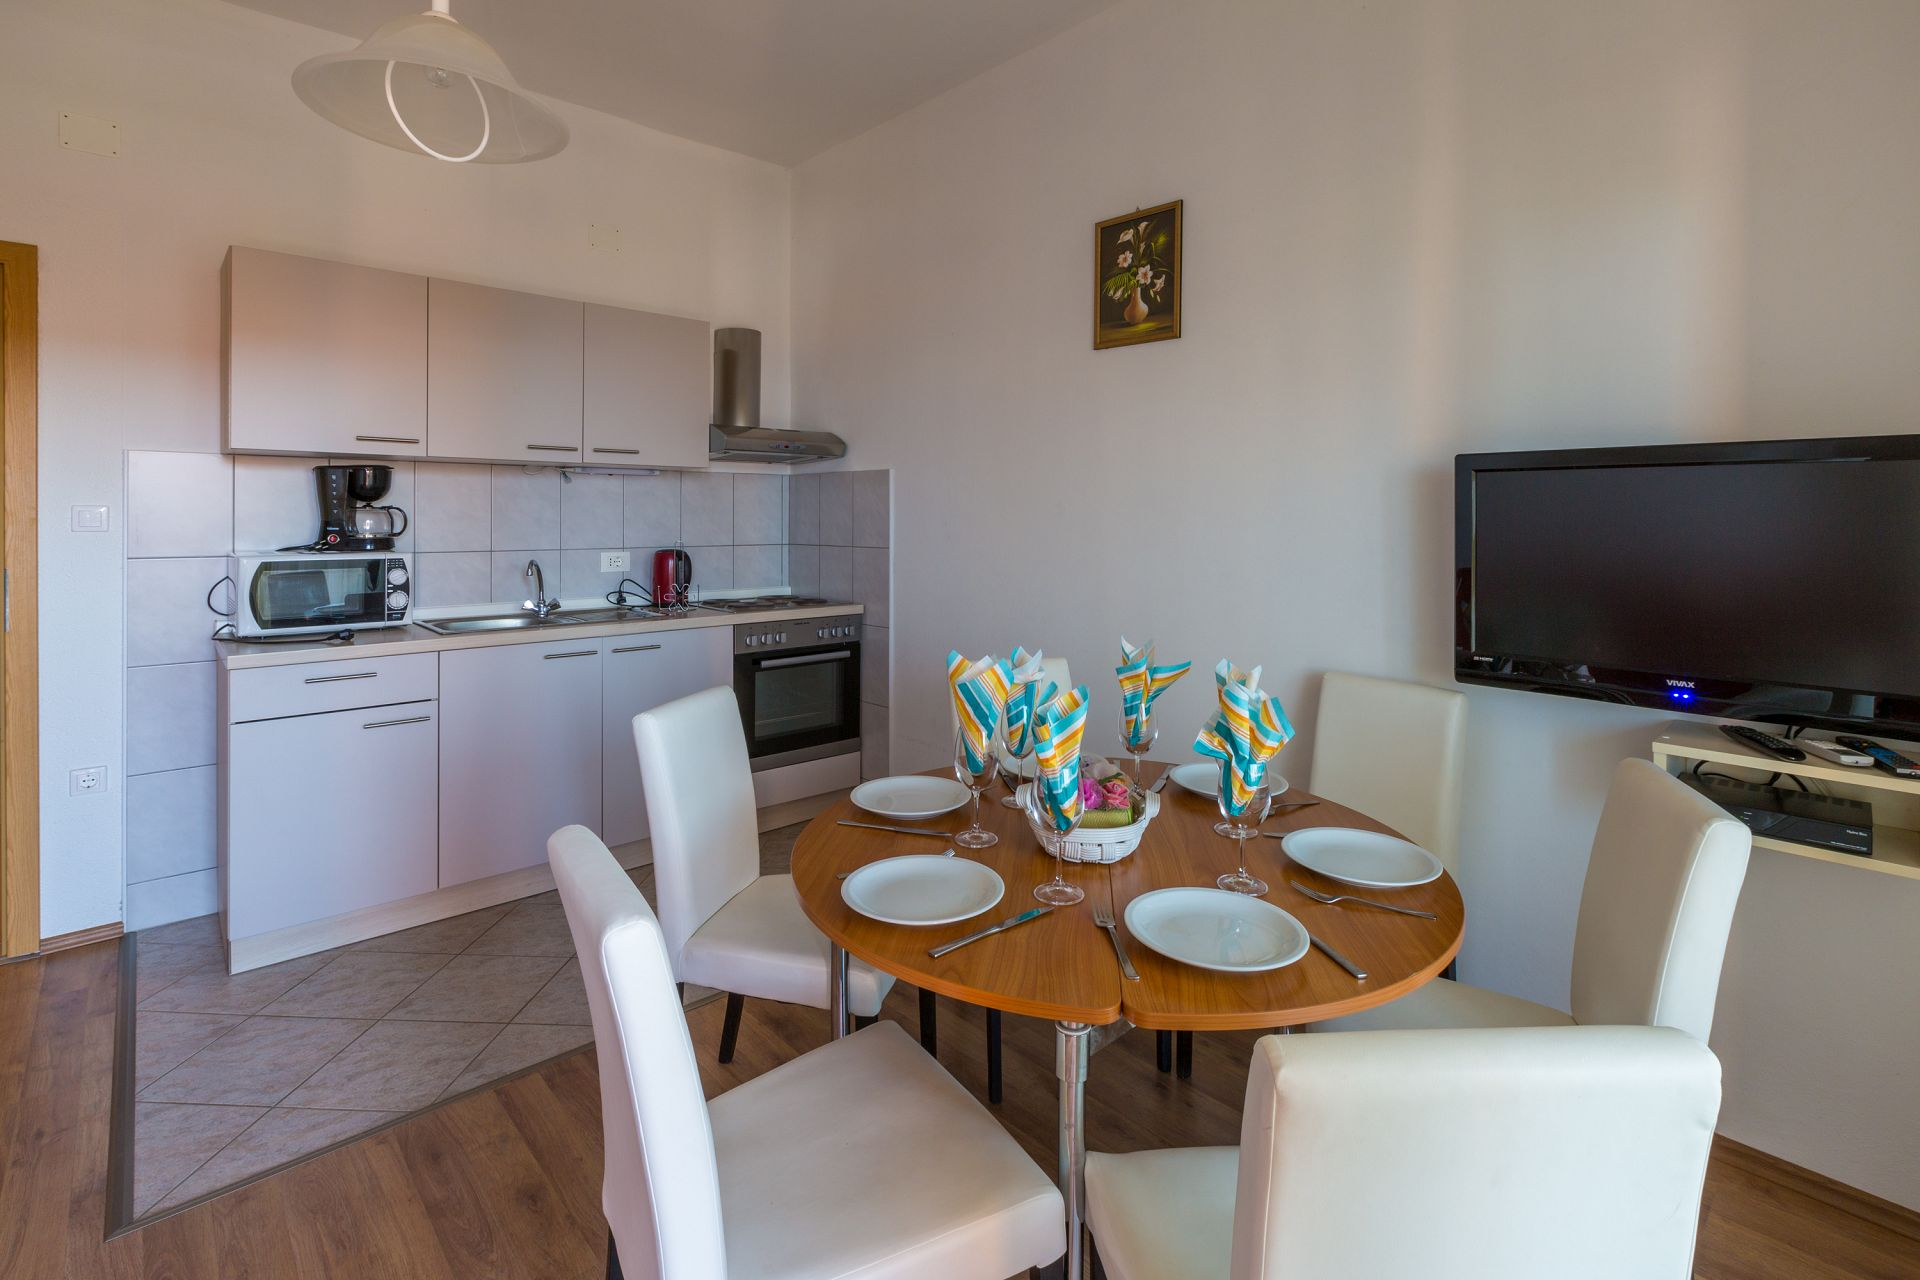 A3 dvosobni(5+1): kitchen and dining room